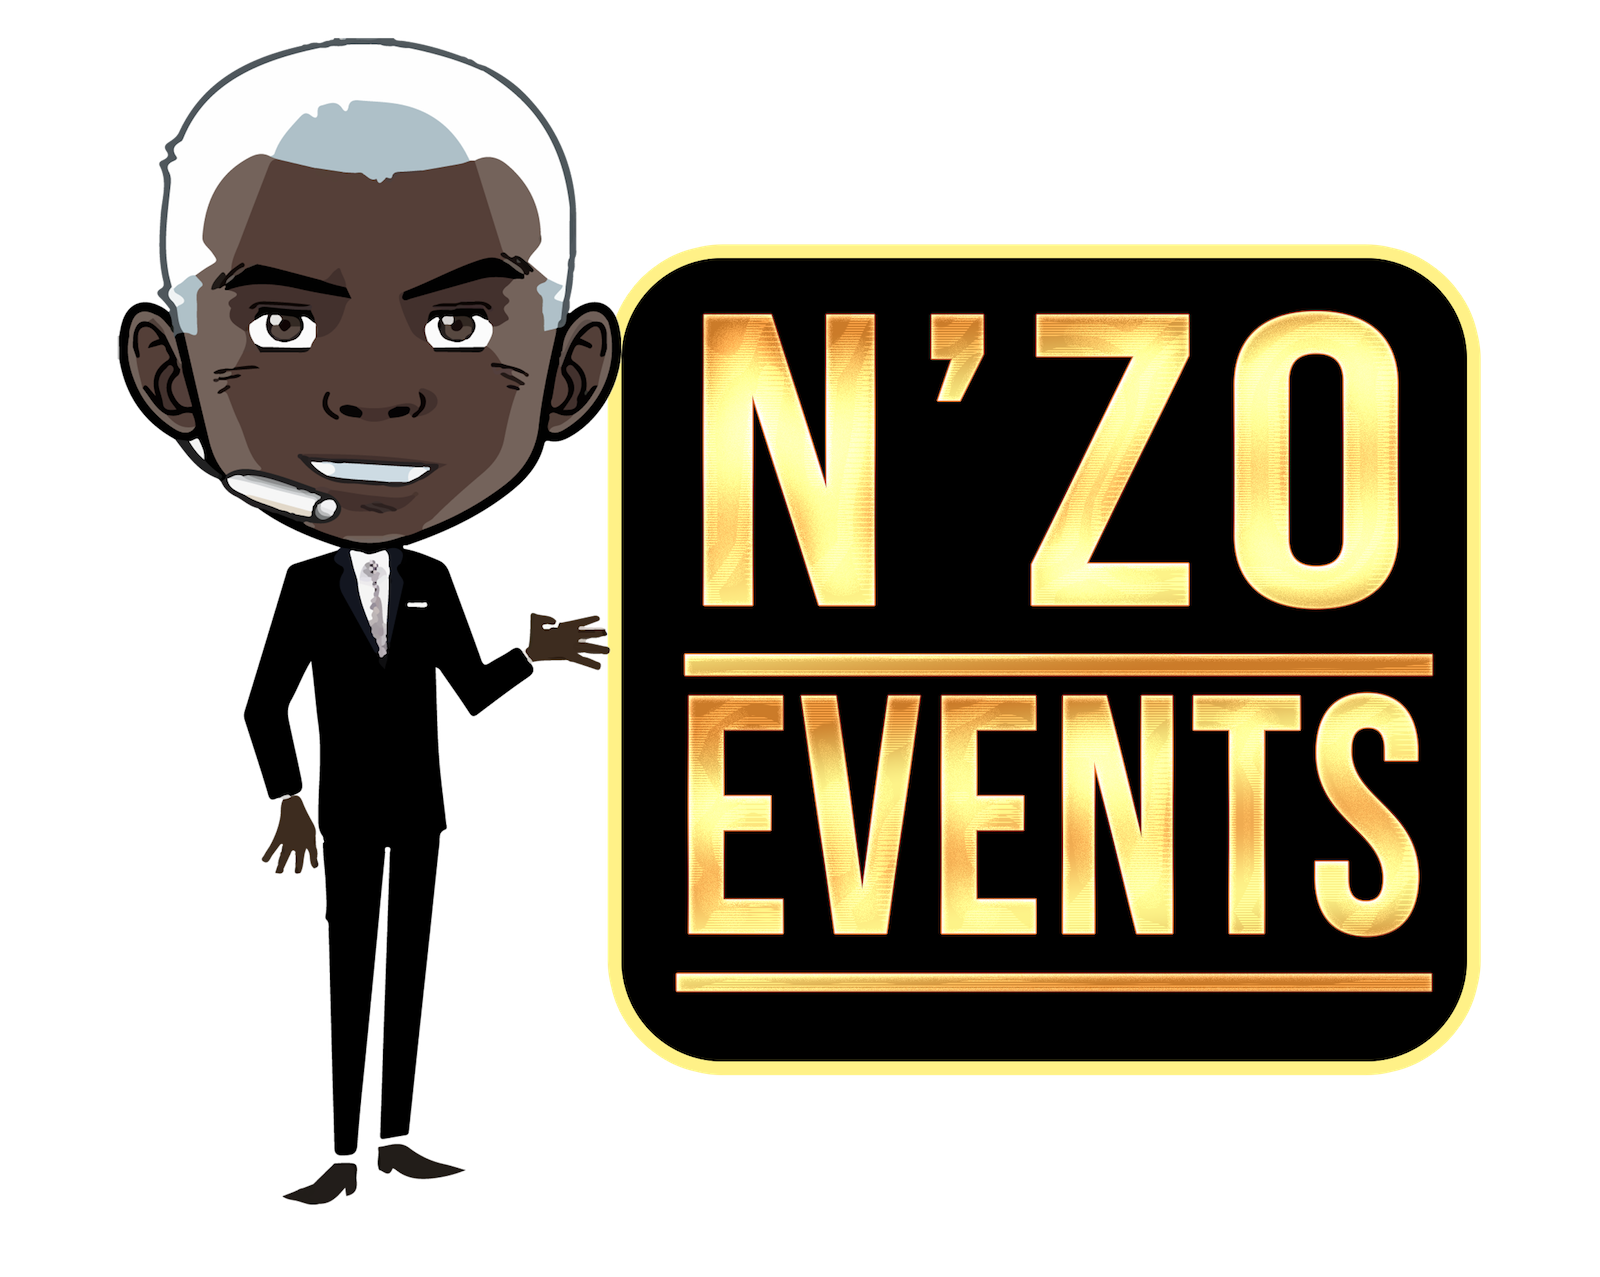 logo_nzo_events_2016.png